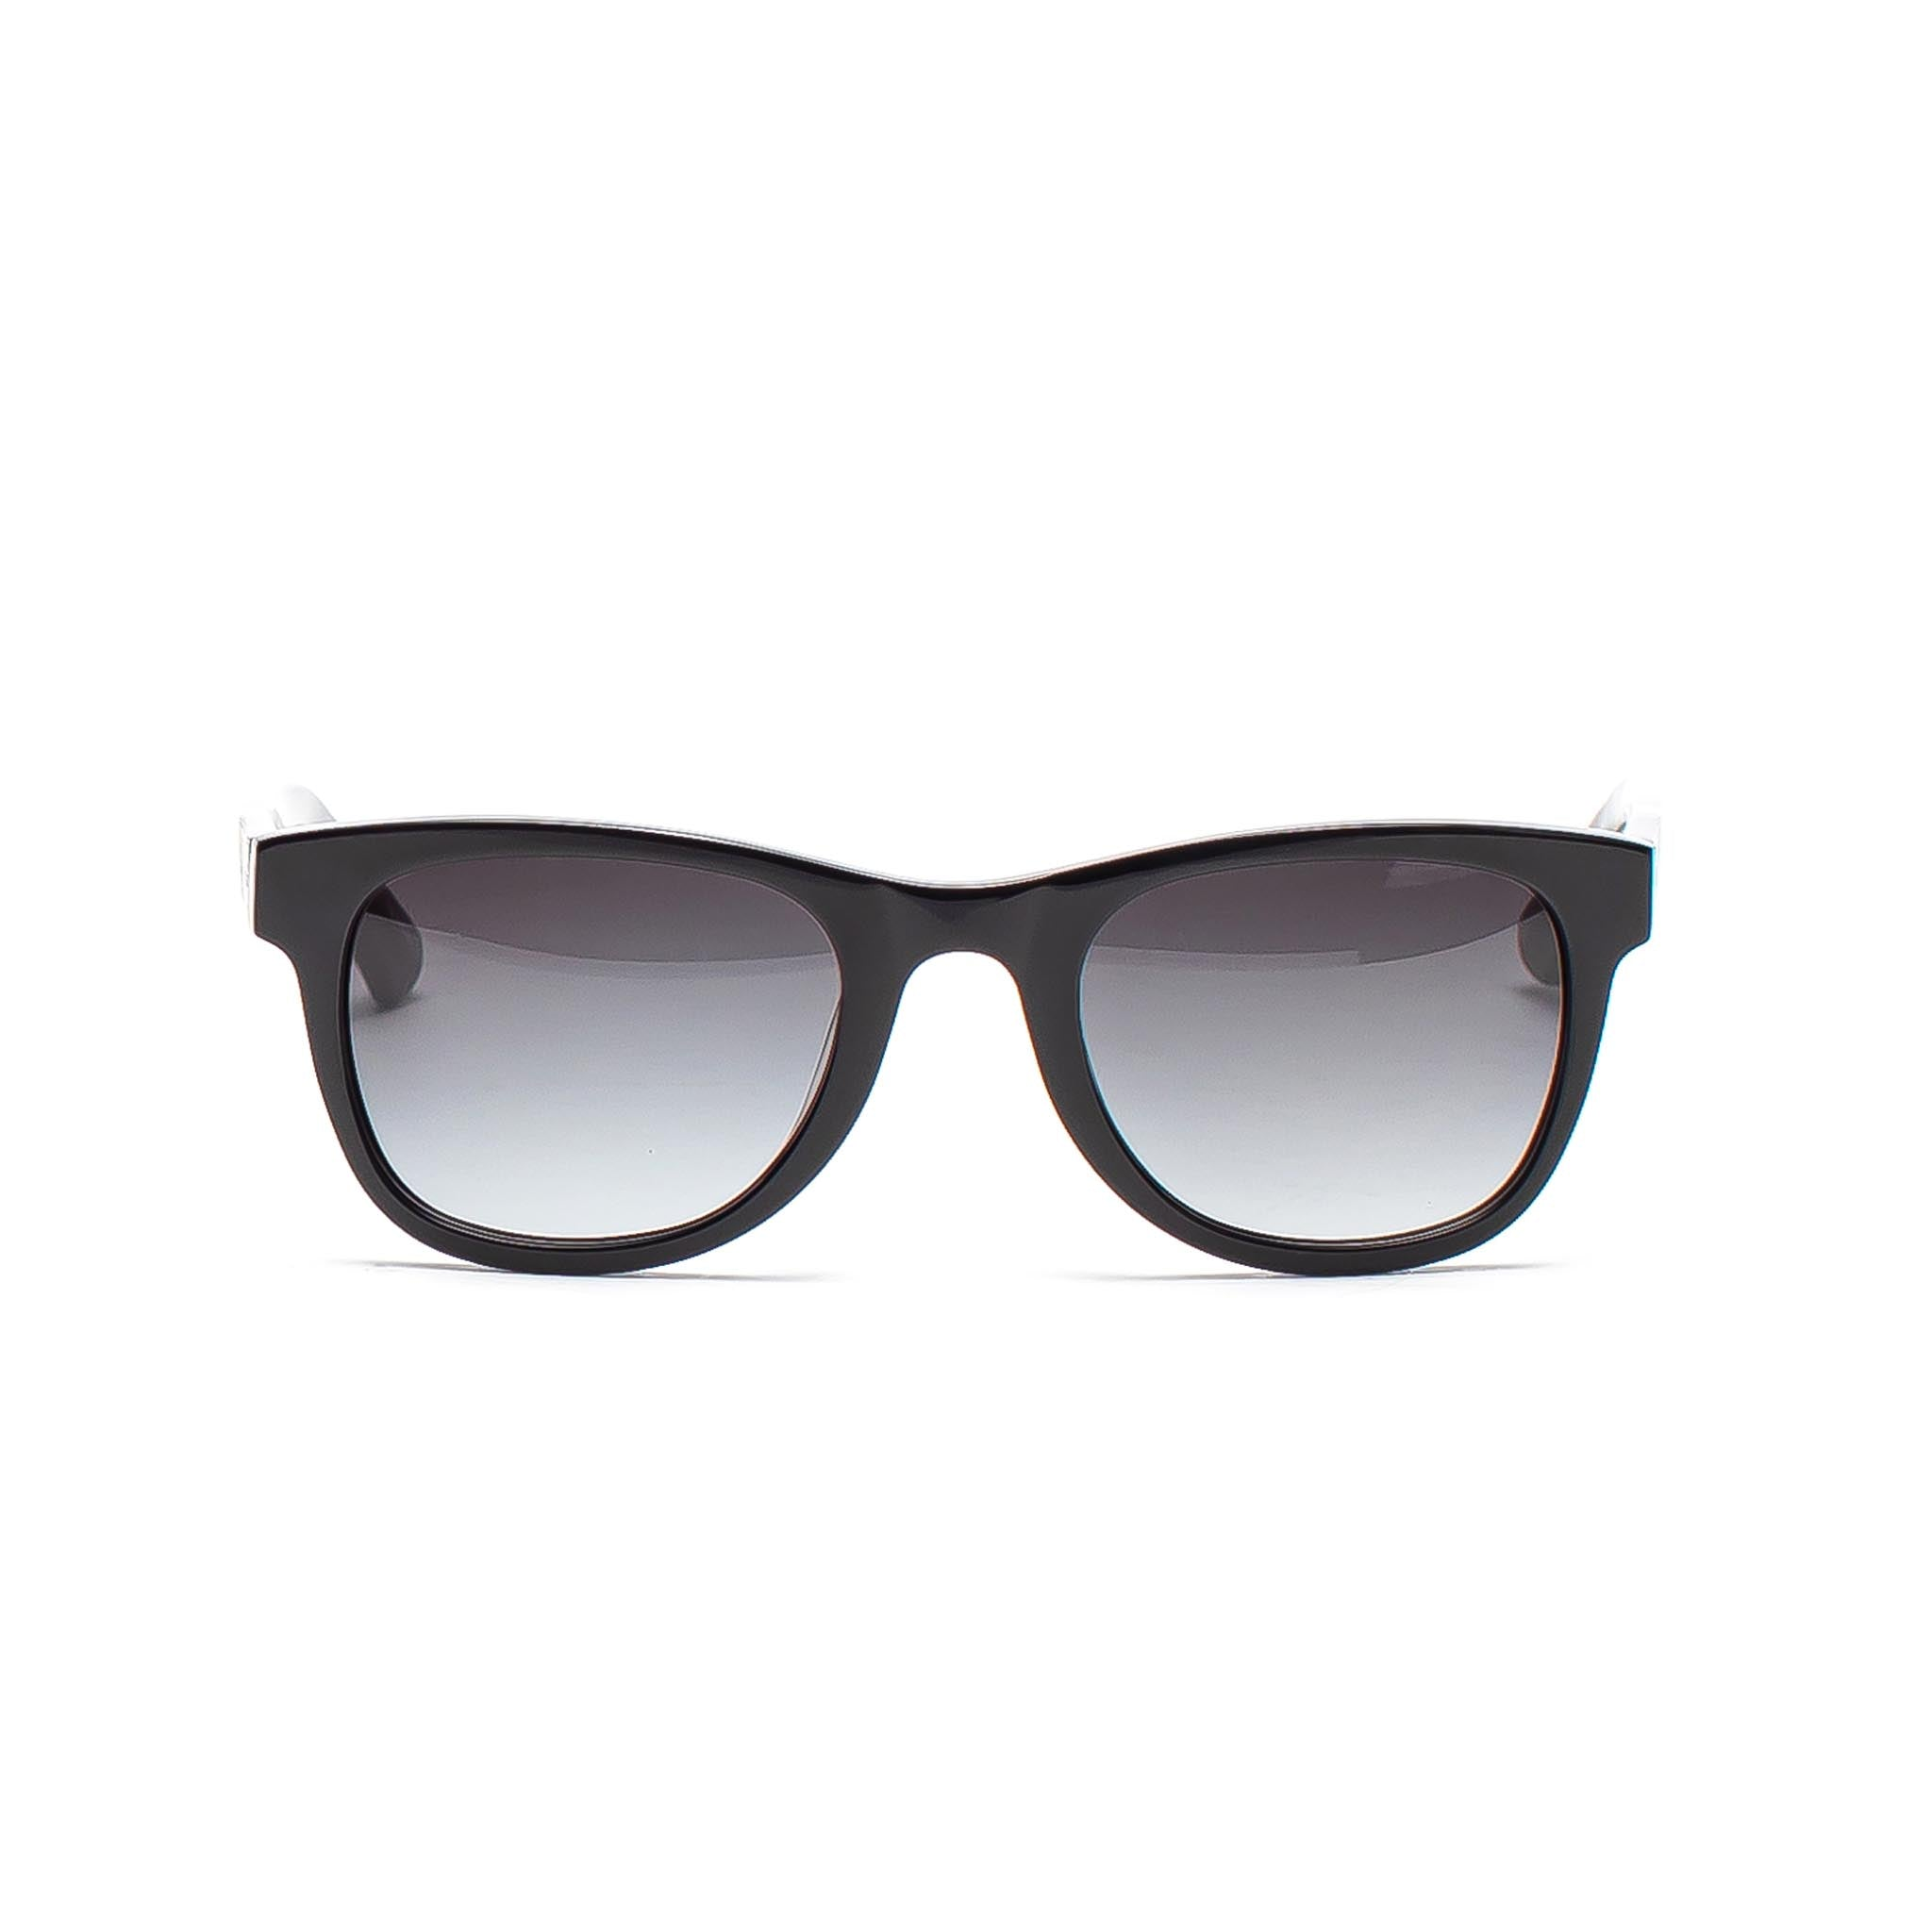 HOMME+ HP012 Sunglasses Black/Grey